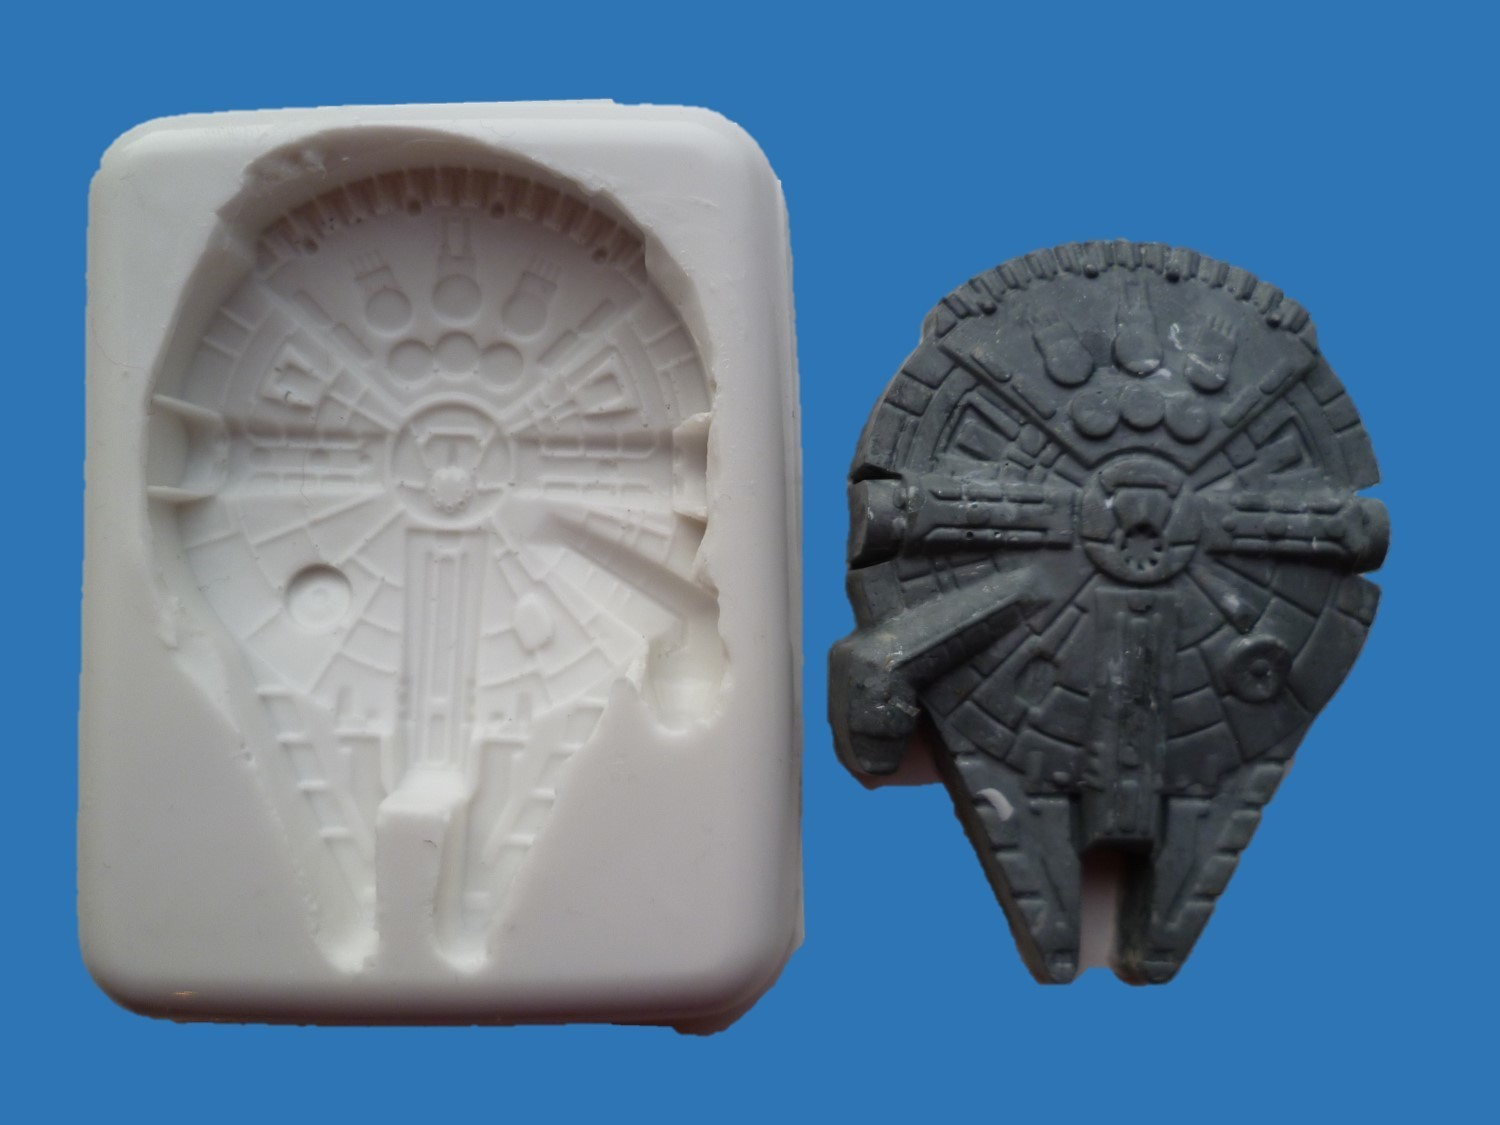 STAR WARS MILLENNIUM FALCON SILICONE MOULD